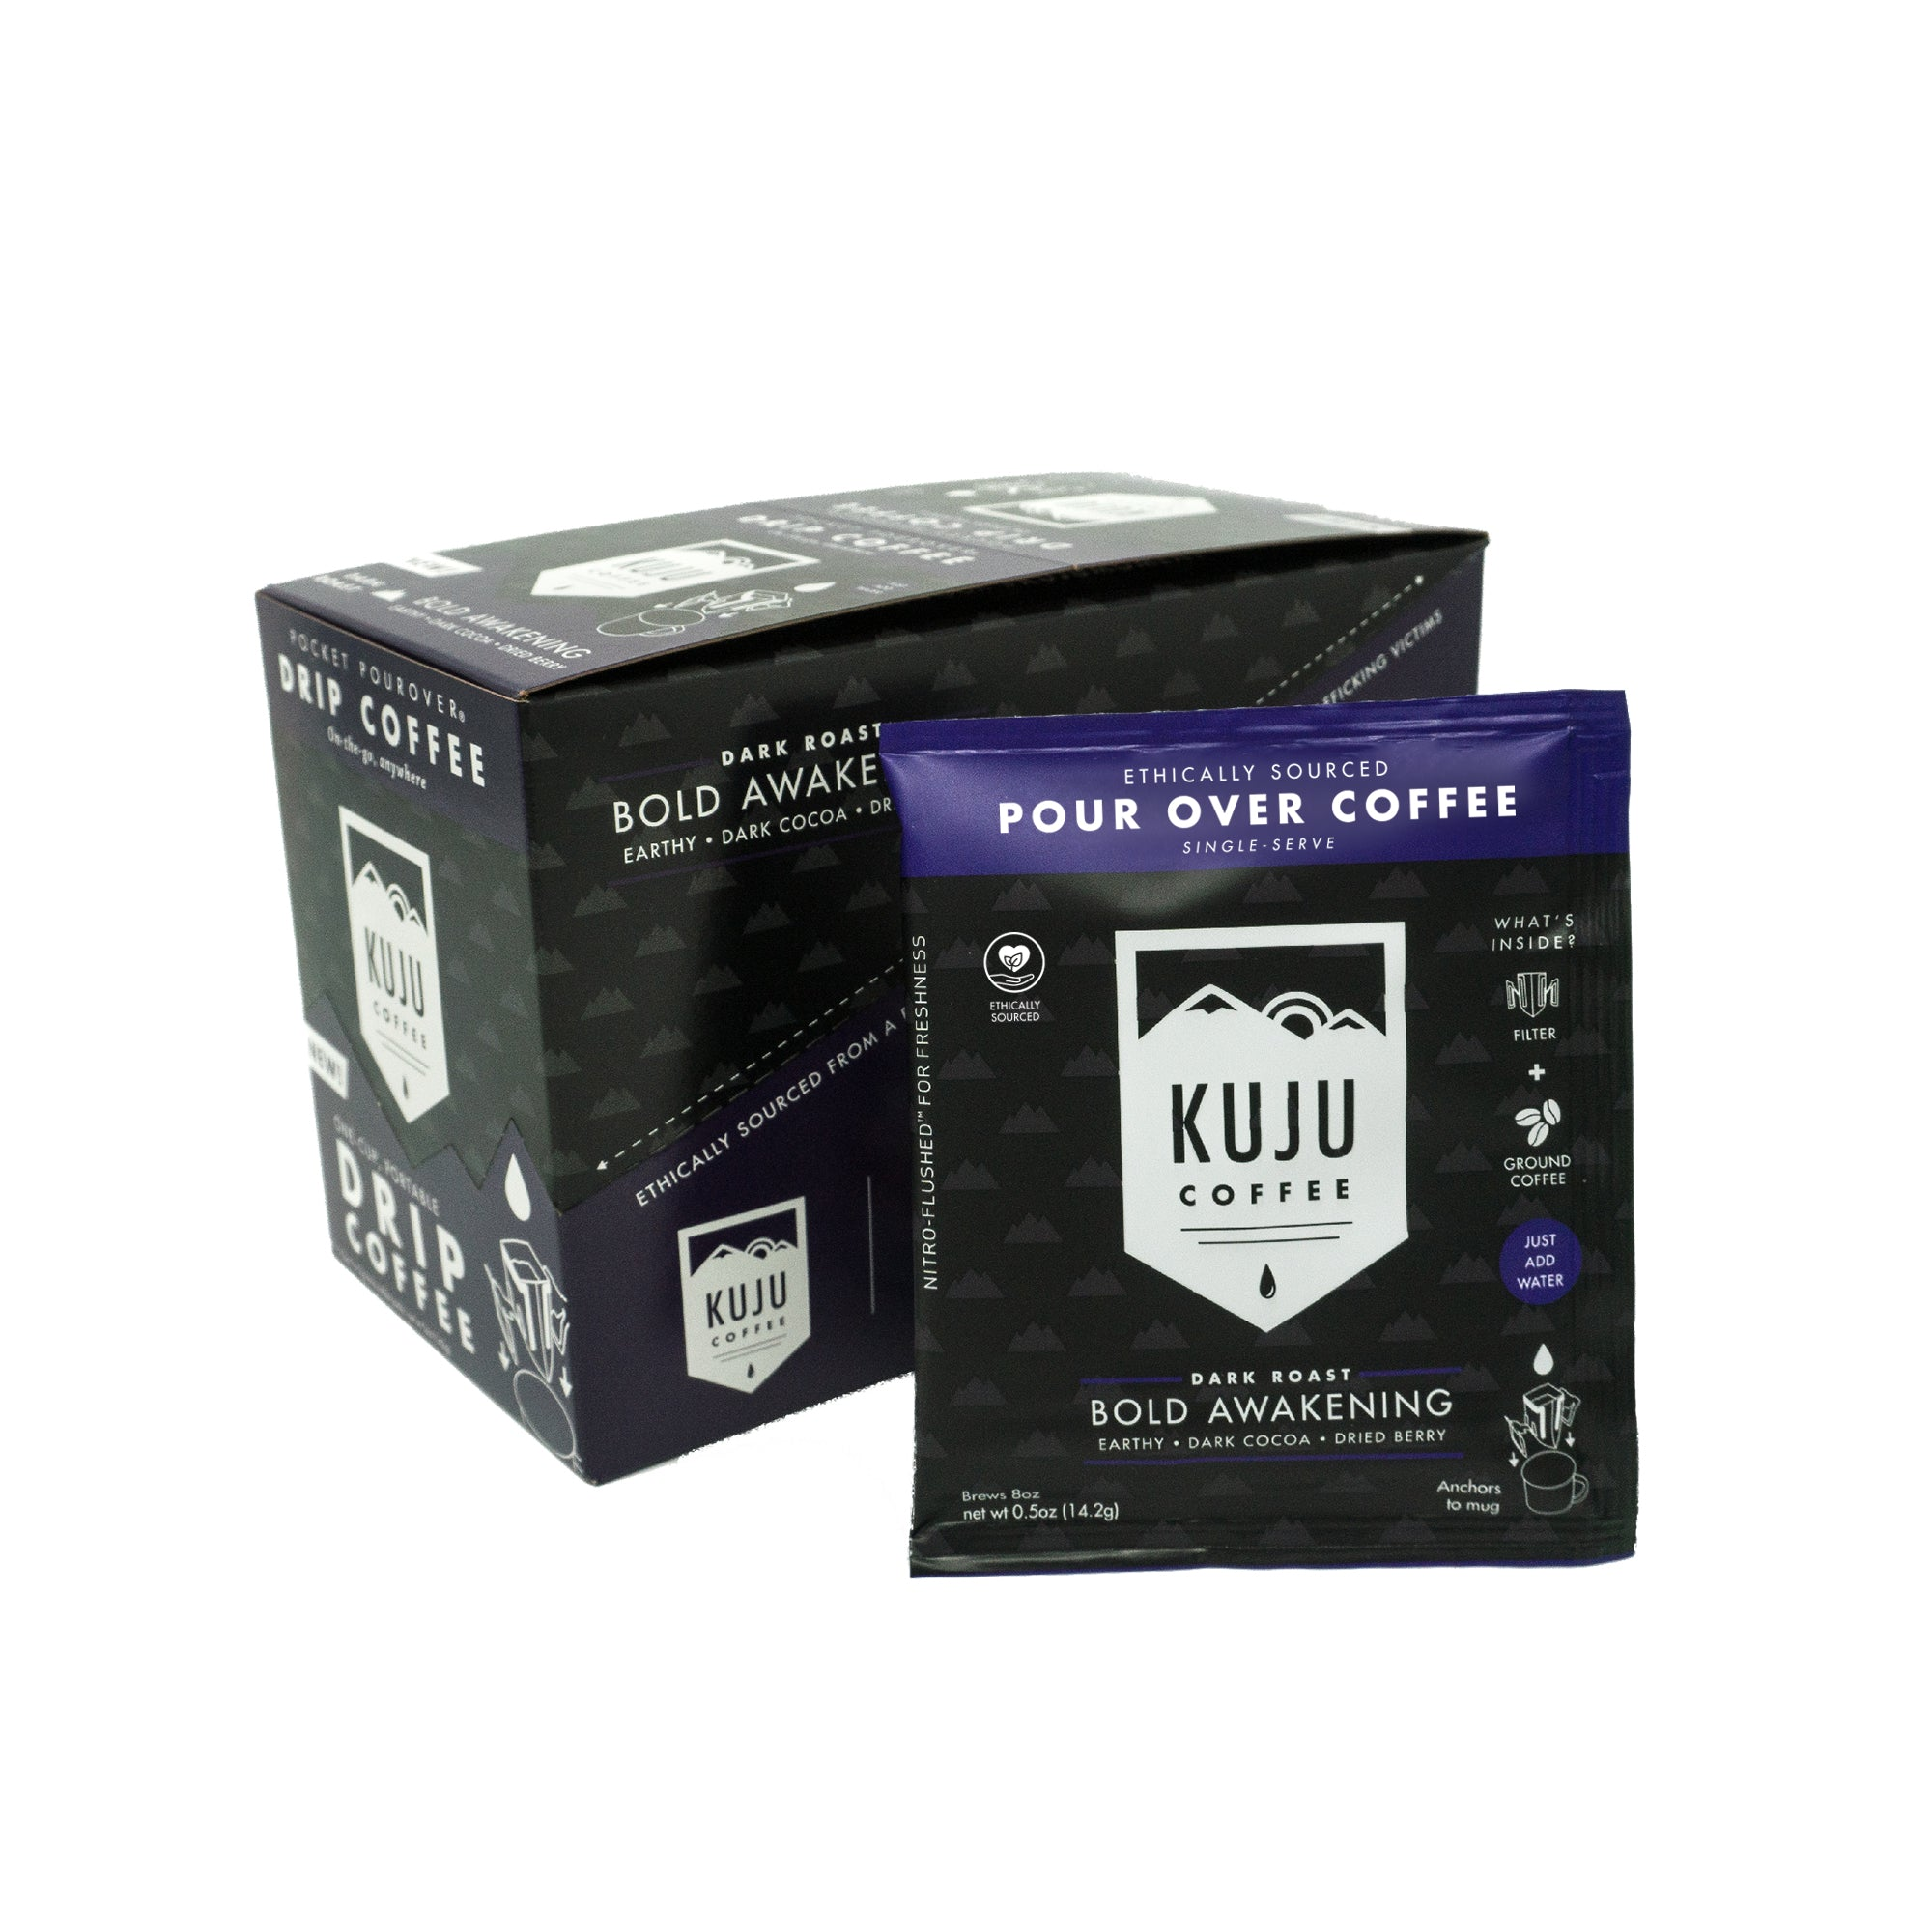 kuju coffee single serve portable disposable use pour over coffee bold awakening dark roast